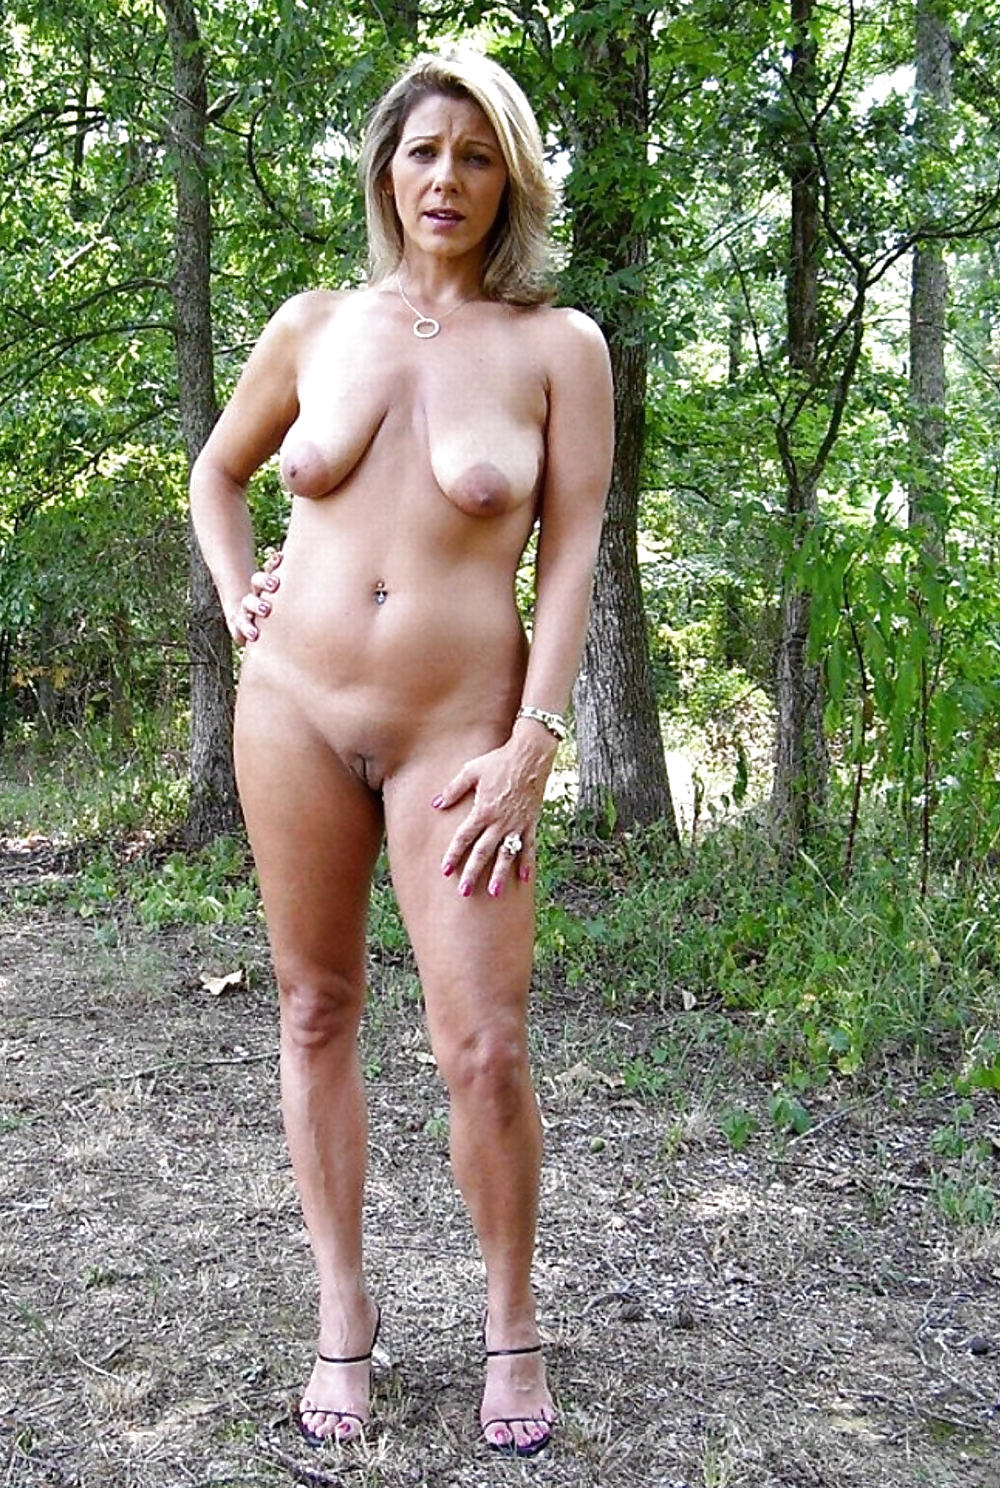 Real moms naked outdoors — photo 8